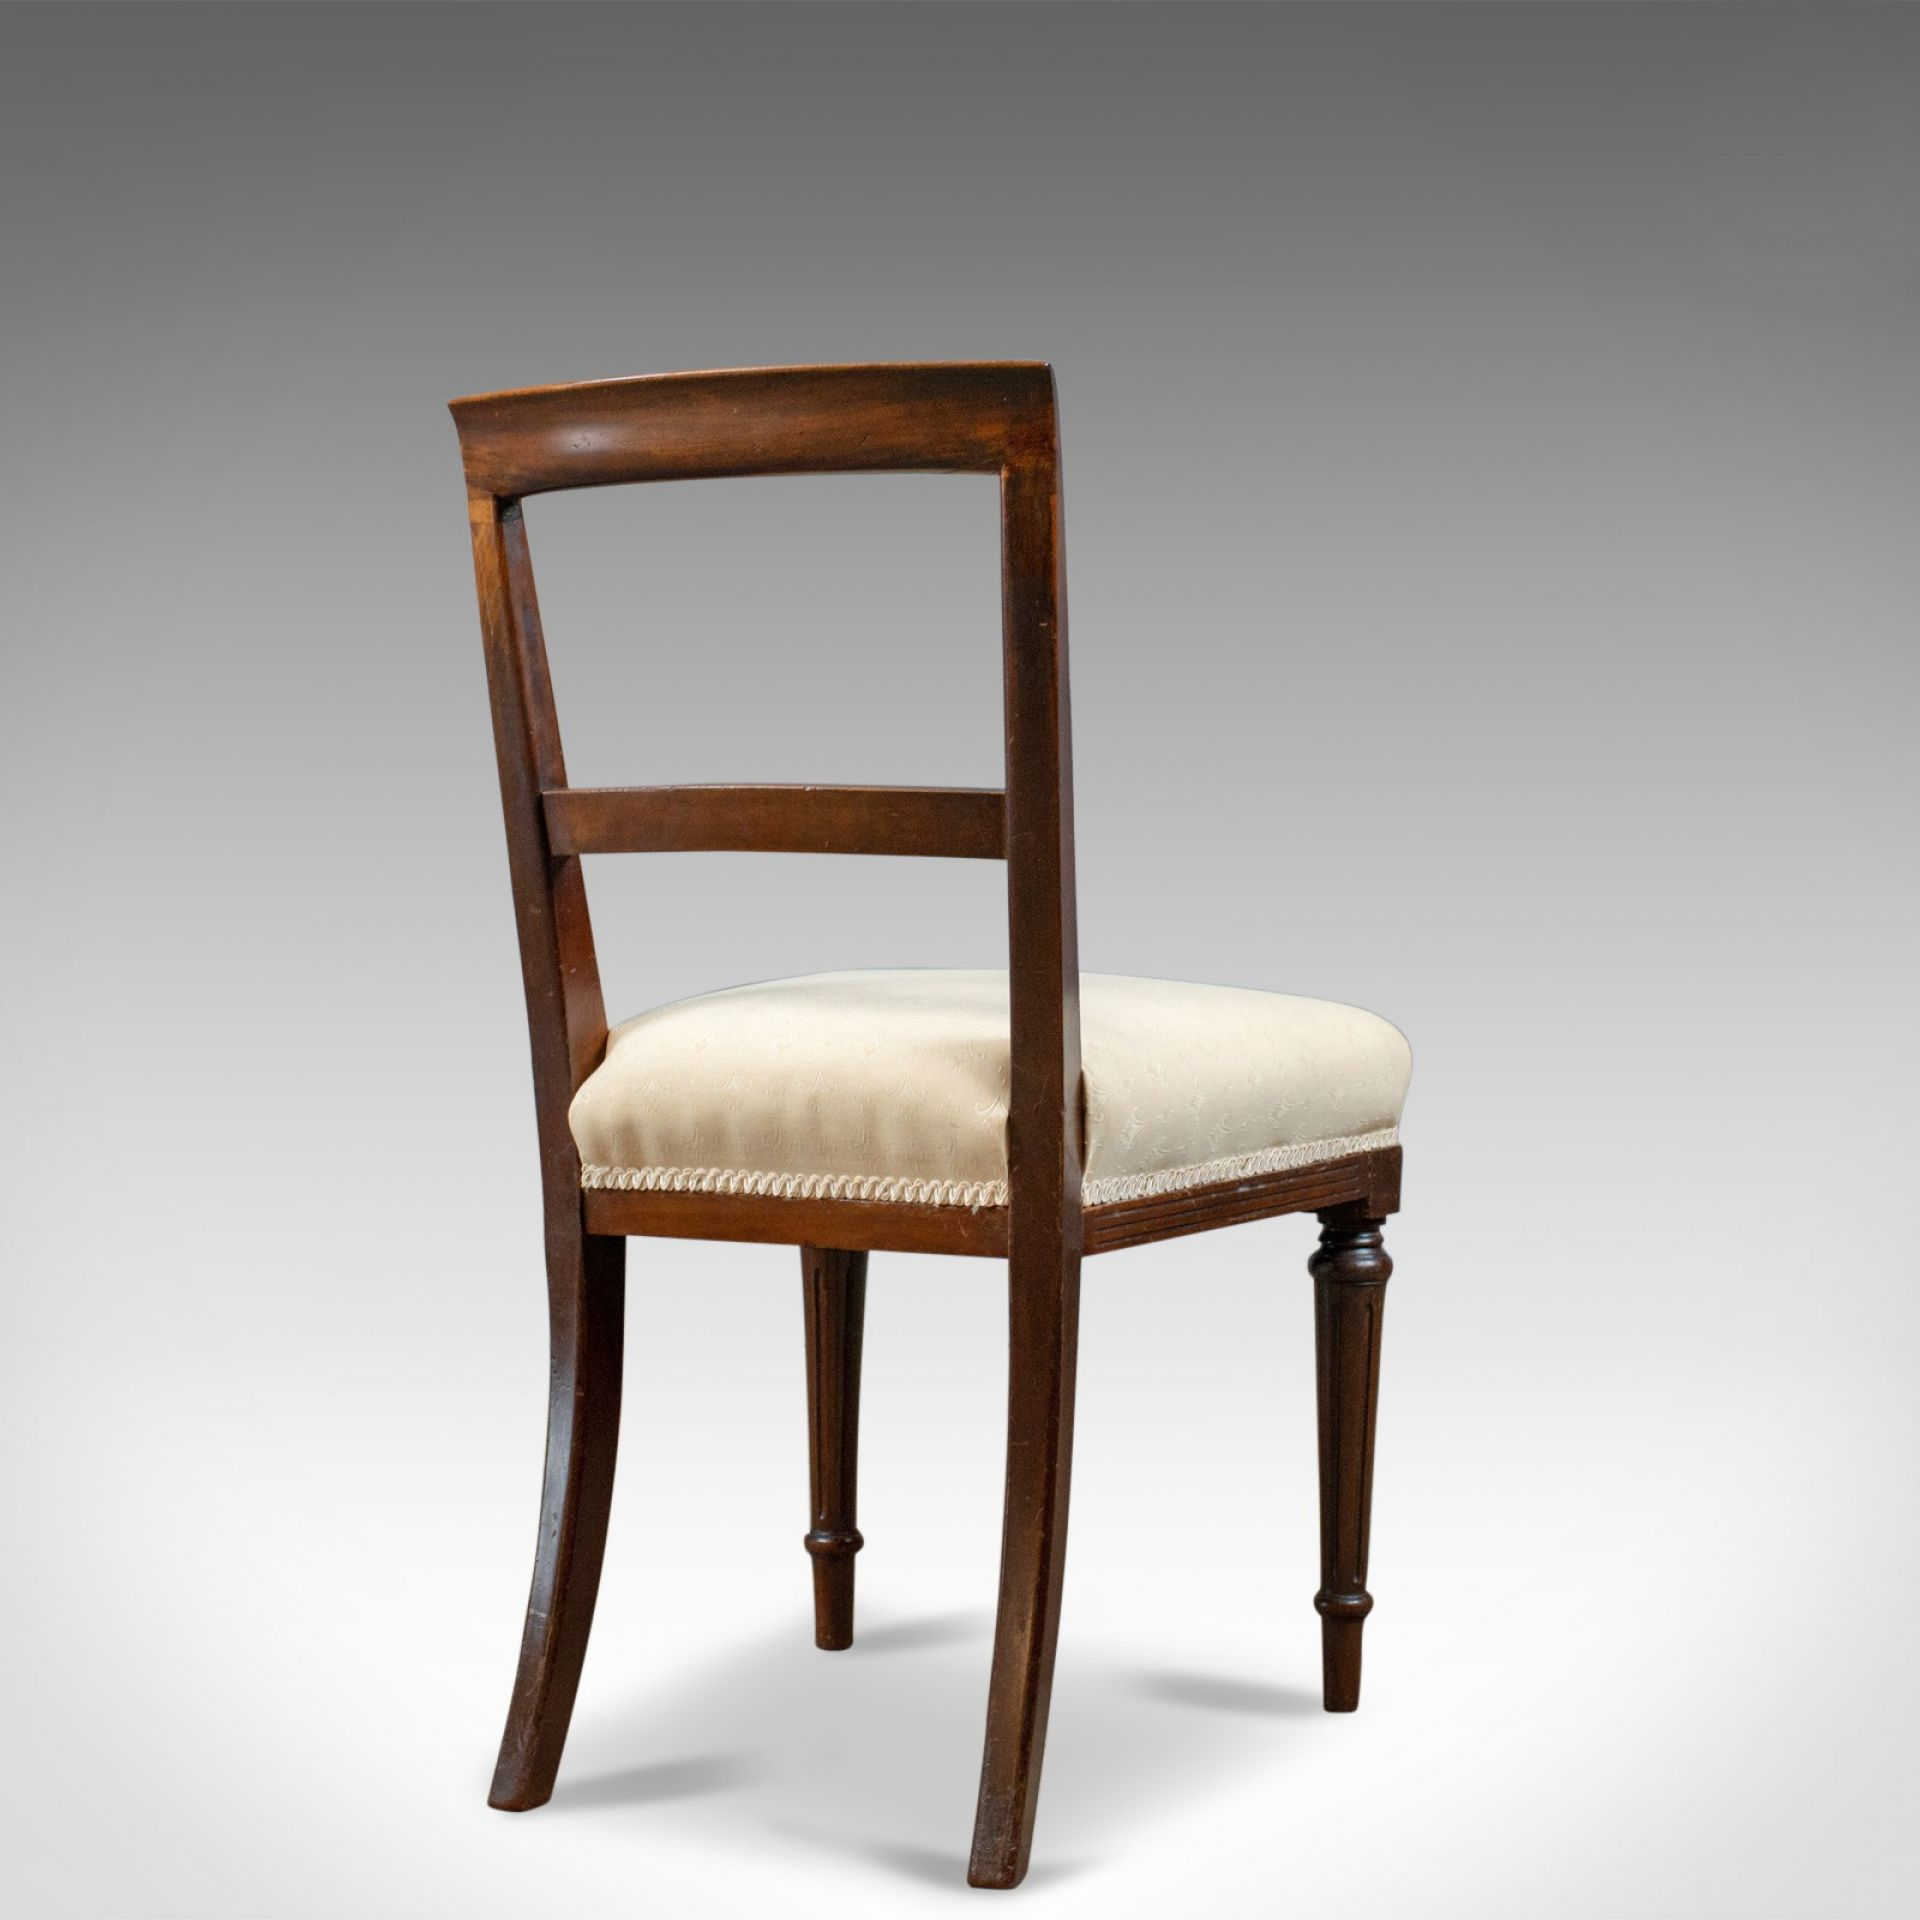 Set of Six Antique Dining Chairs, English, Victorian, Mahogany, Shoolbred, c1840